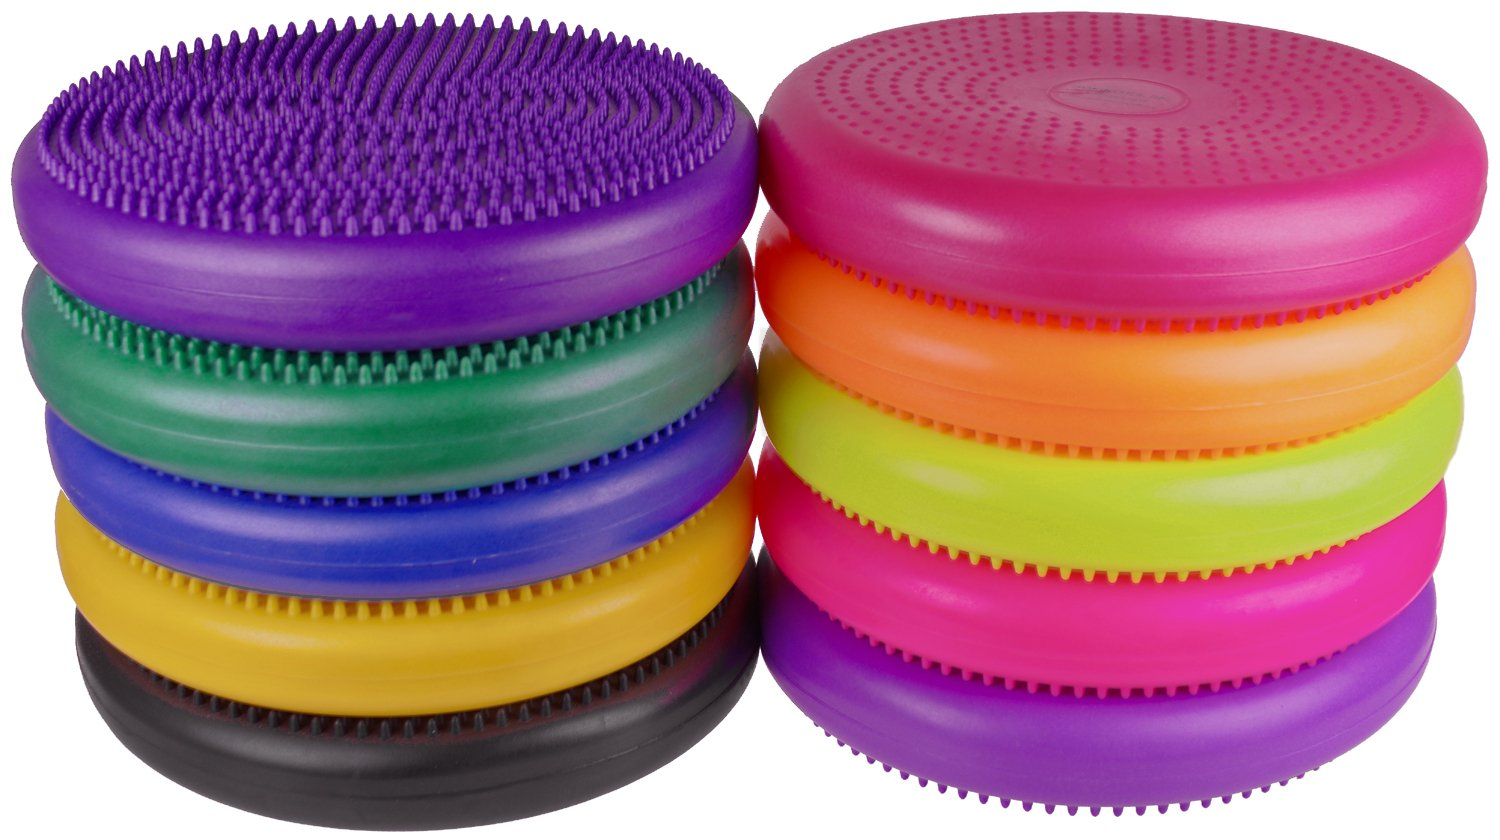 Balance Cushion For Chair Sensory+Seat+Cushions Help for Your Fidgety Students | Scholastic.com